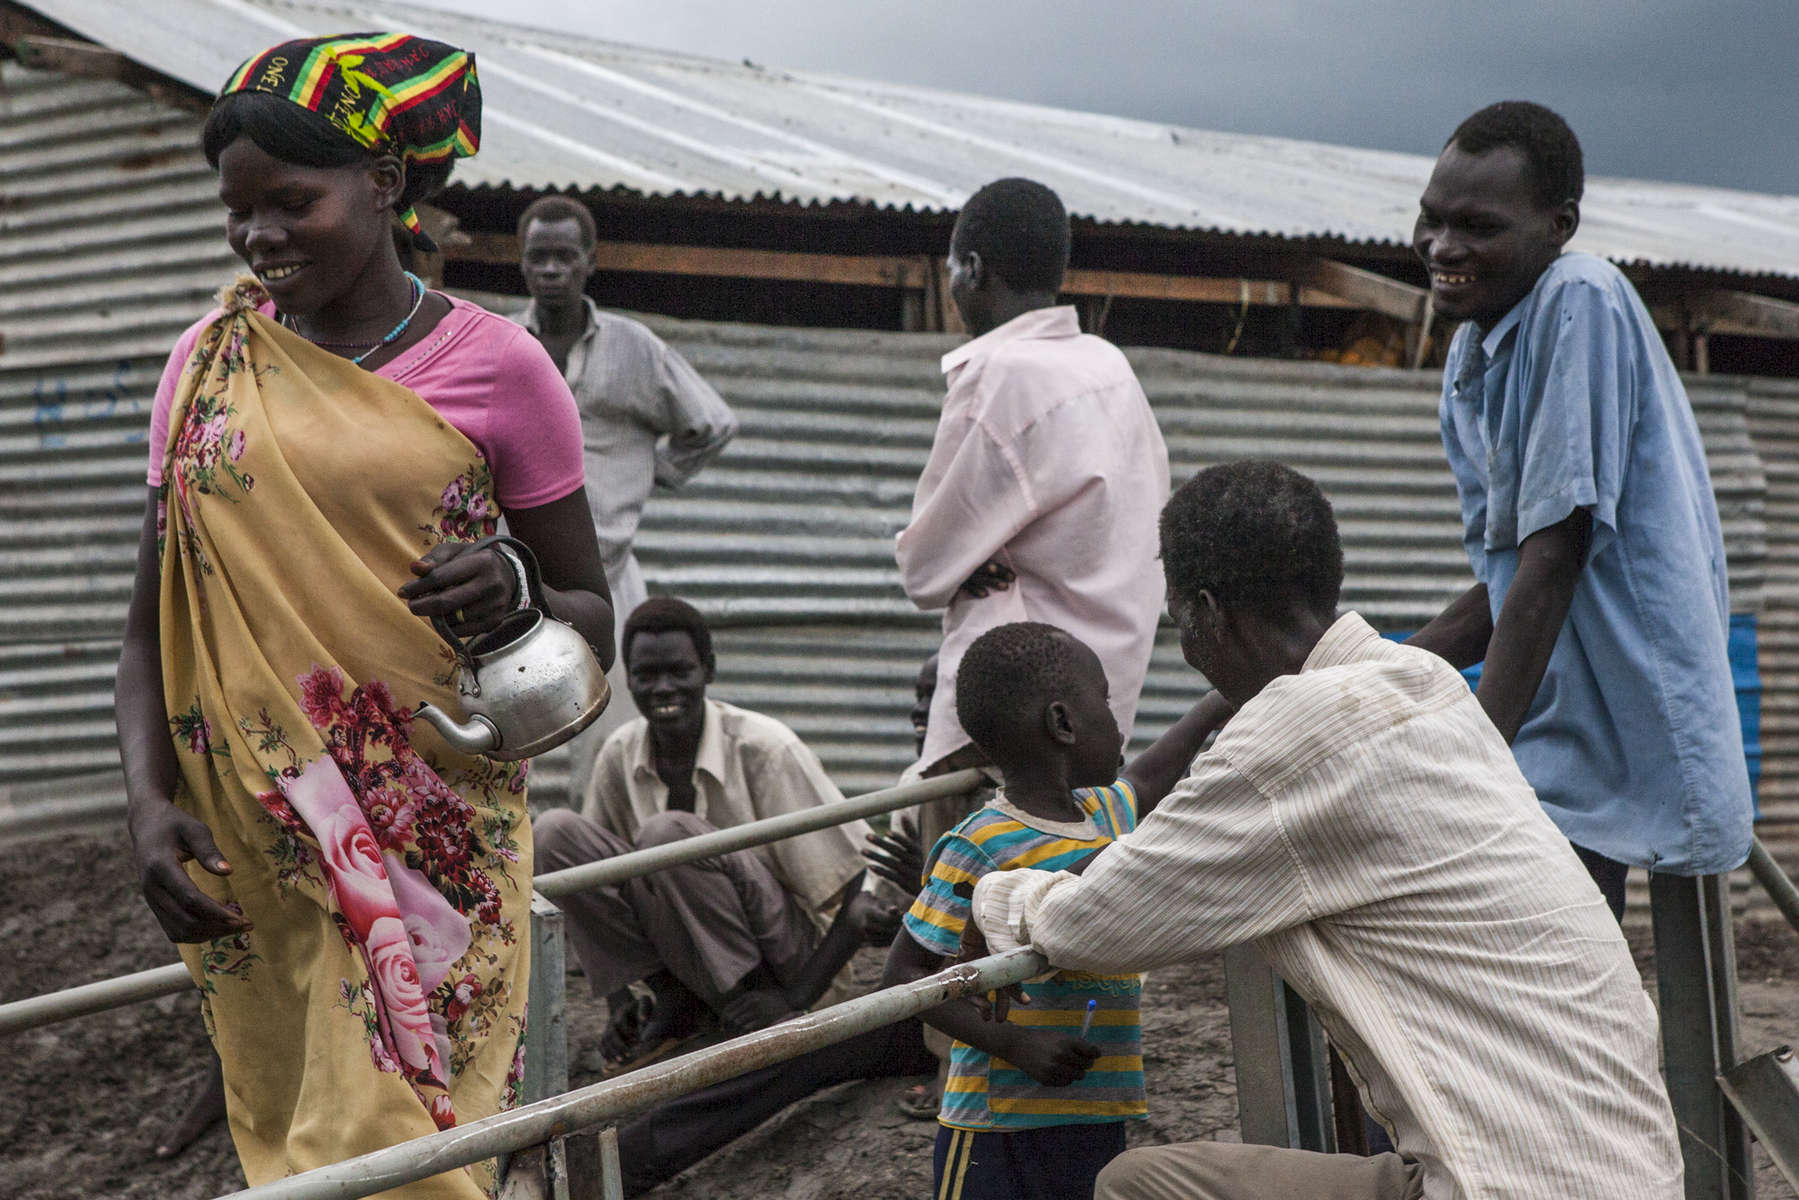 A group of people gather at a small bridge at the Protection of Civilians (POC) site at the United Nations Mission in South Sudan (UNMISS) compound in Malakal, South Sudan on Wednesday, July 13, 2016. The Malakal POC site houses over 32,000 displaced people mainly from the Shilluk and Nuer tribes. In February of this year, members of the Dinka tribe, who resided in the camp at the time, carried out a coordinated attack within the site leading to the destruction of hundreds of shelters and many deaths. Since then, most members of the Dinka tribe have fled to Malakal town where they occupy the homes of those still displaced.